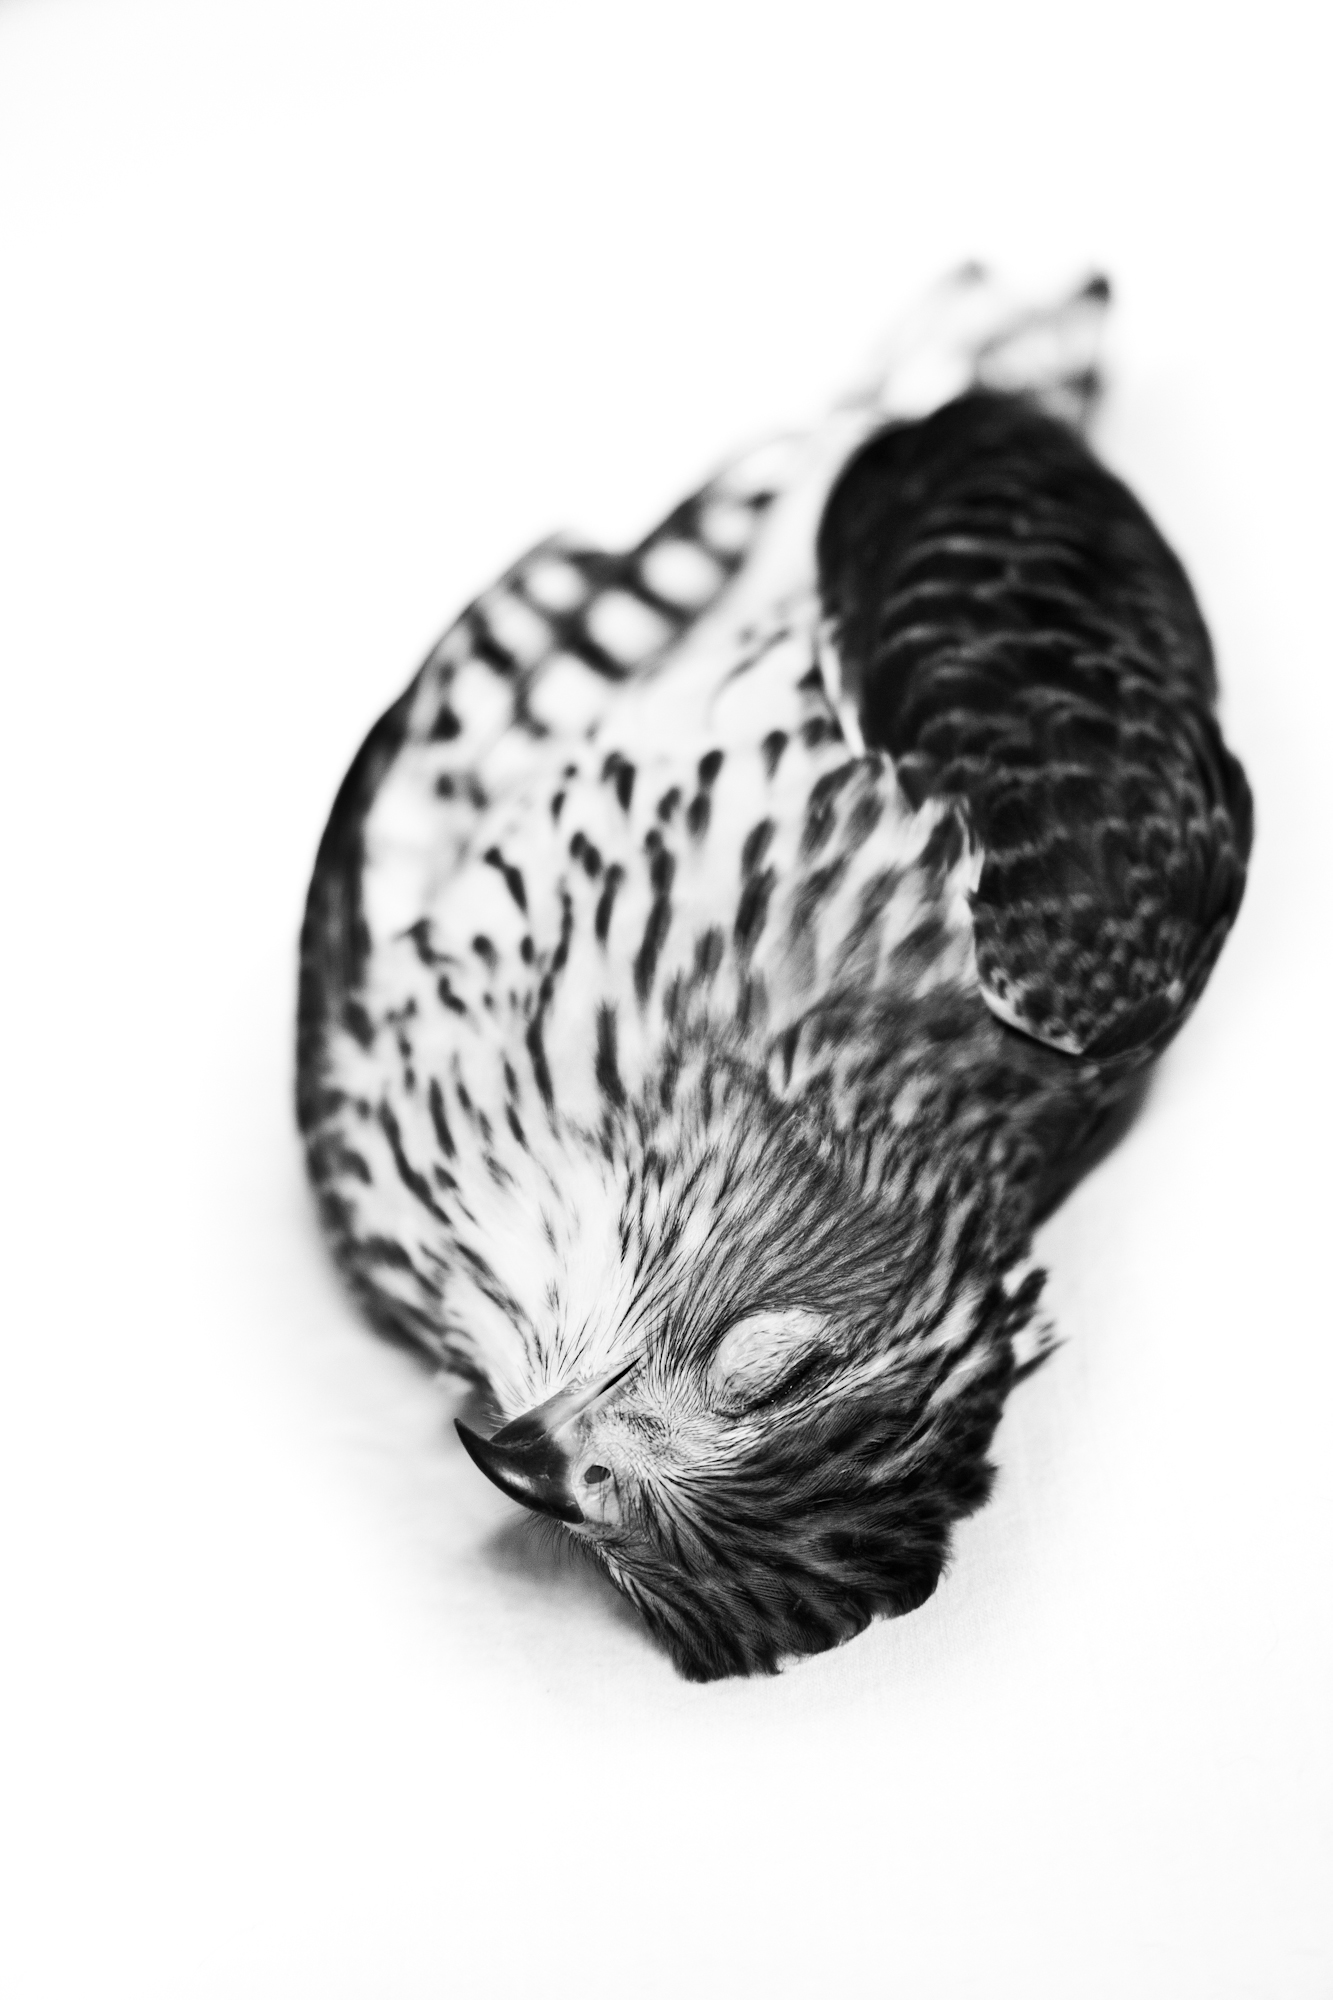 Hawk, Hudson NY 2013 - Kate Sterlin